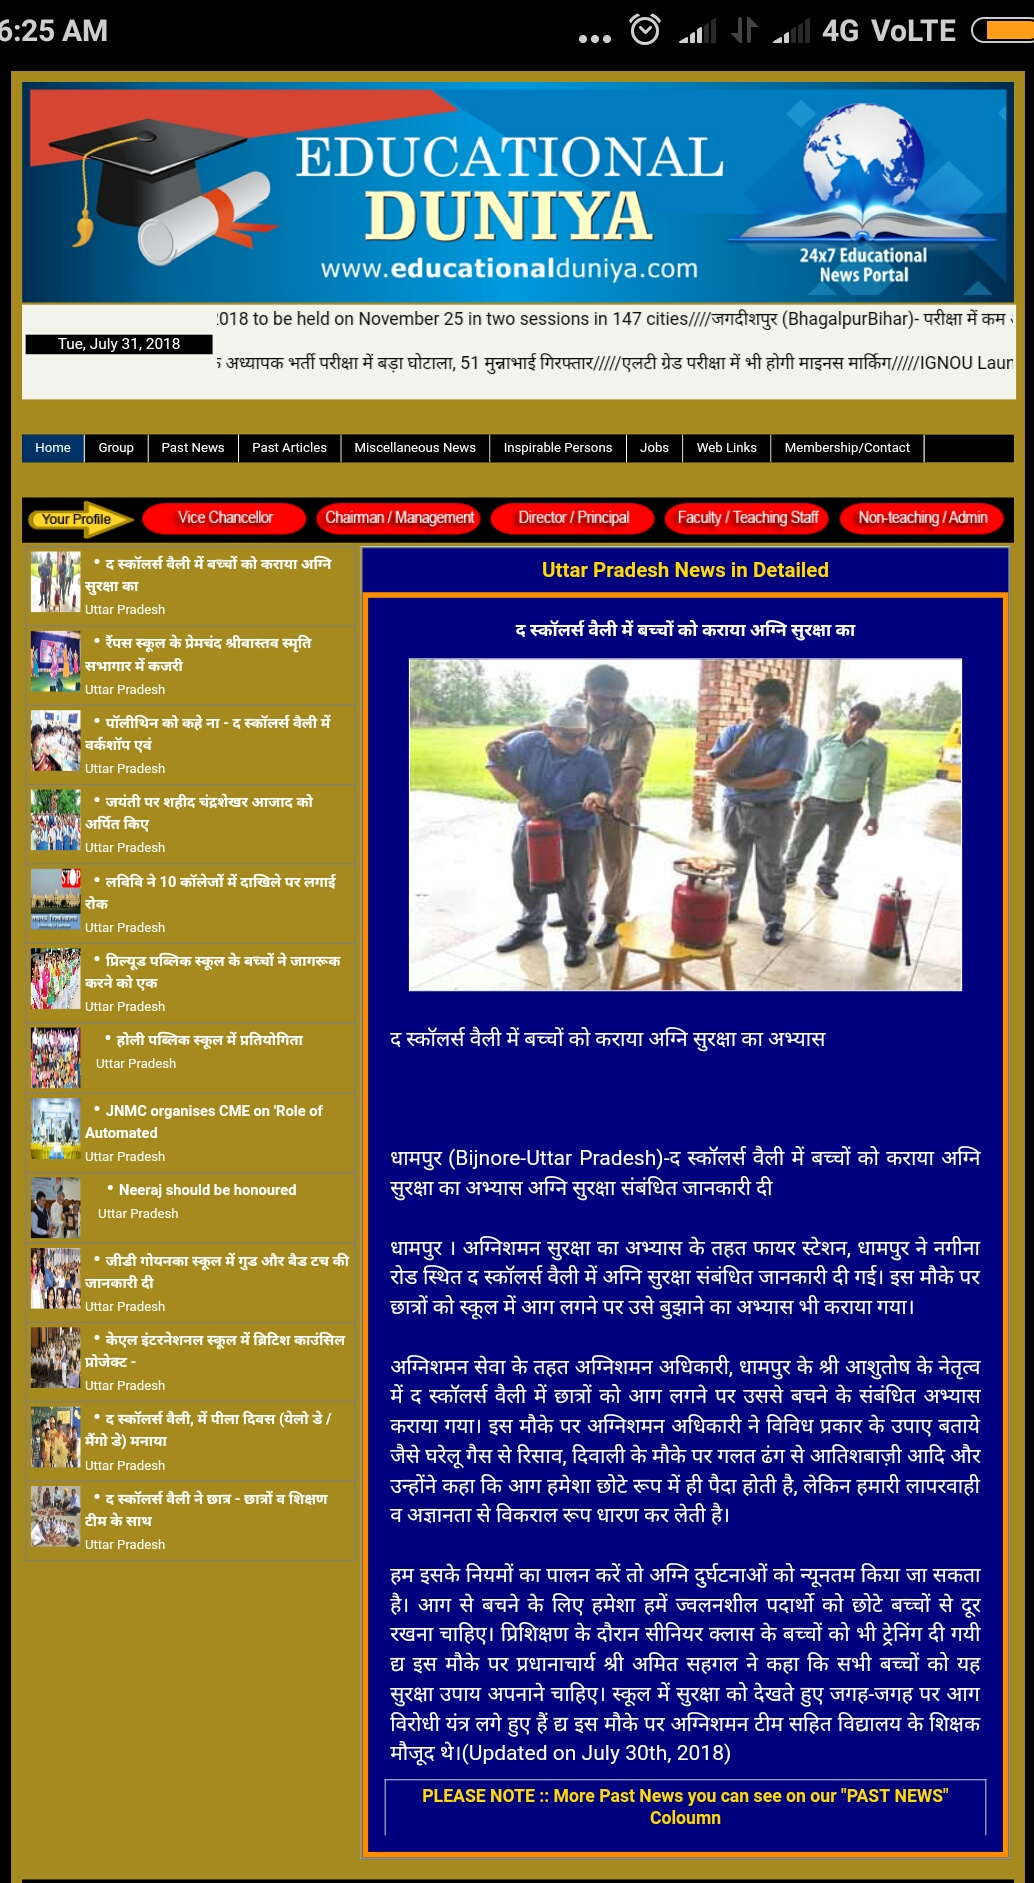 Fire Safety - Educational Duniya News Portal  (31.07.2018)